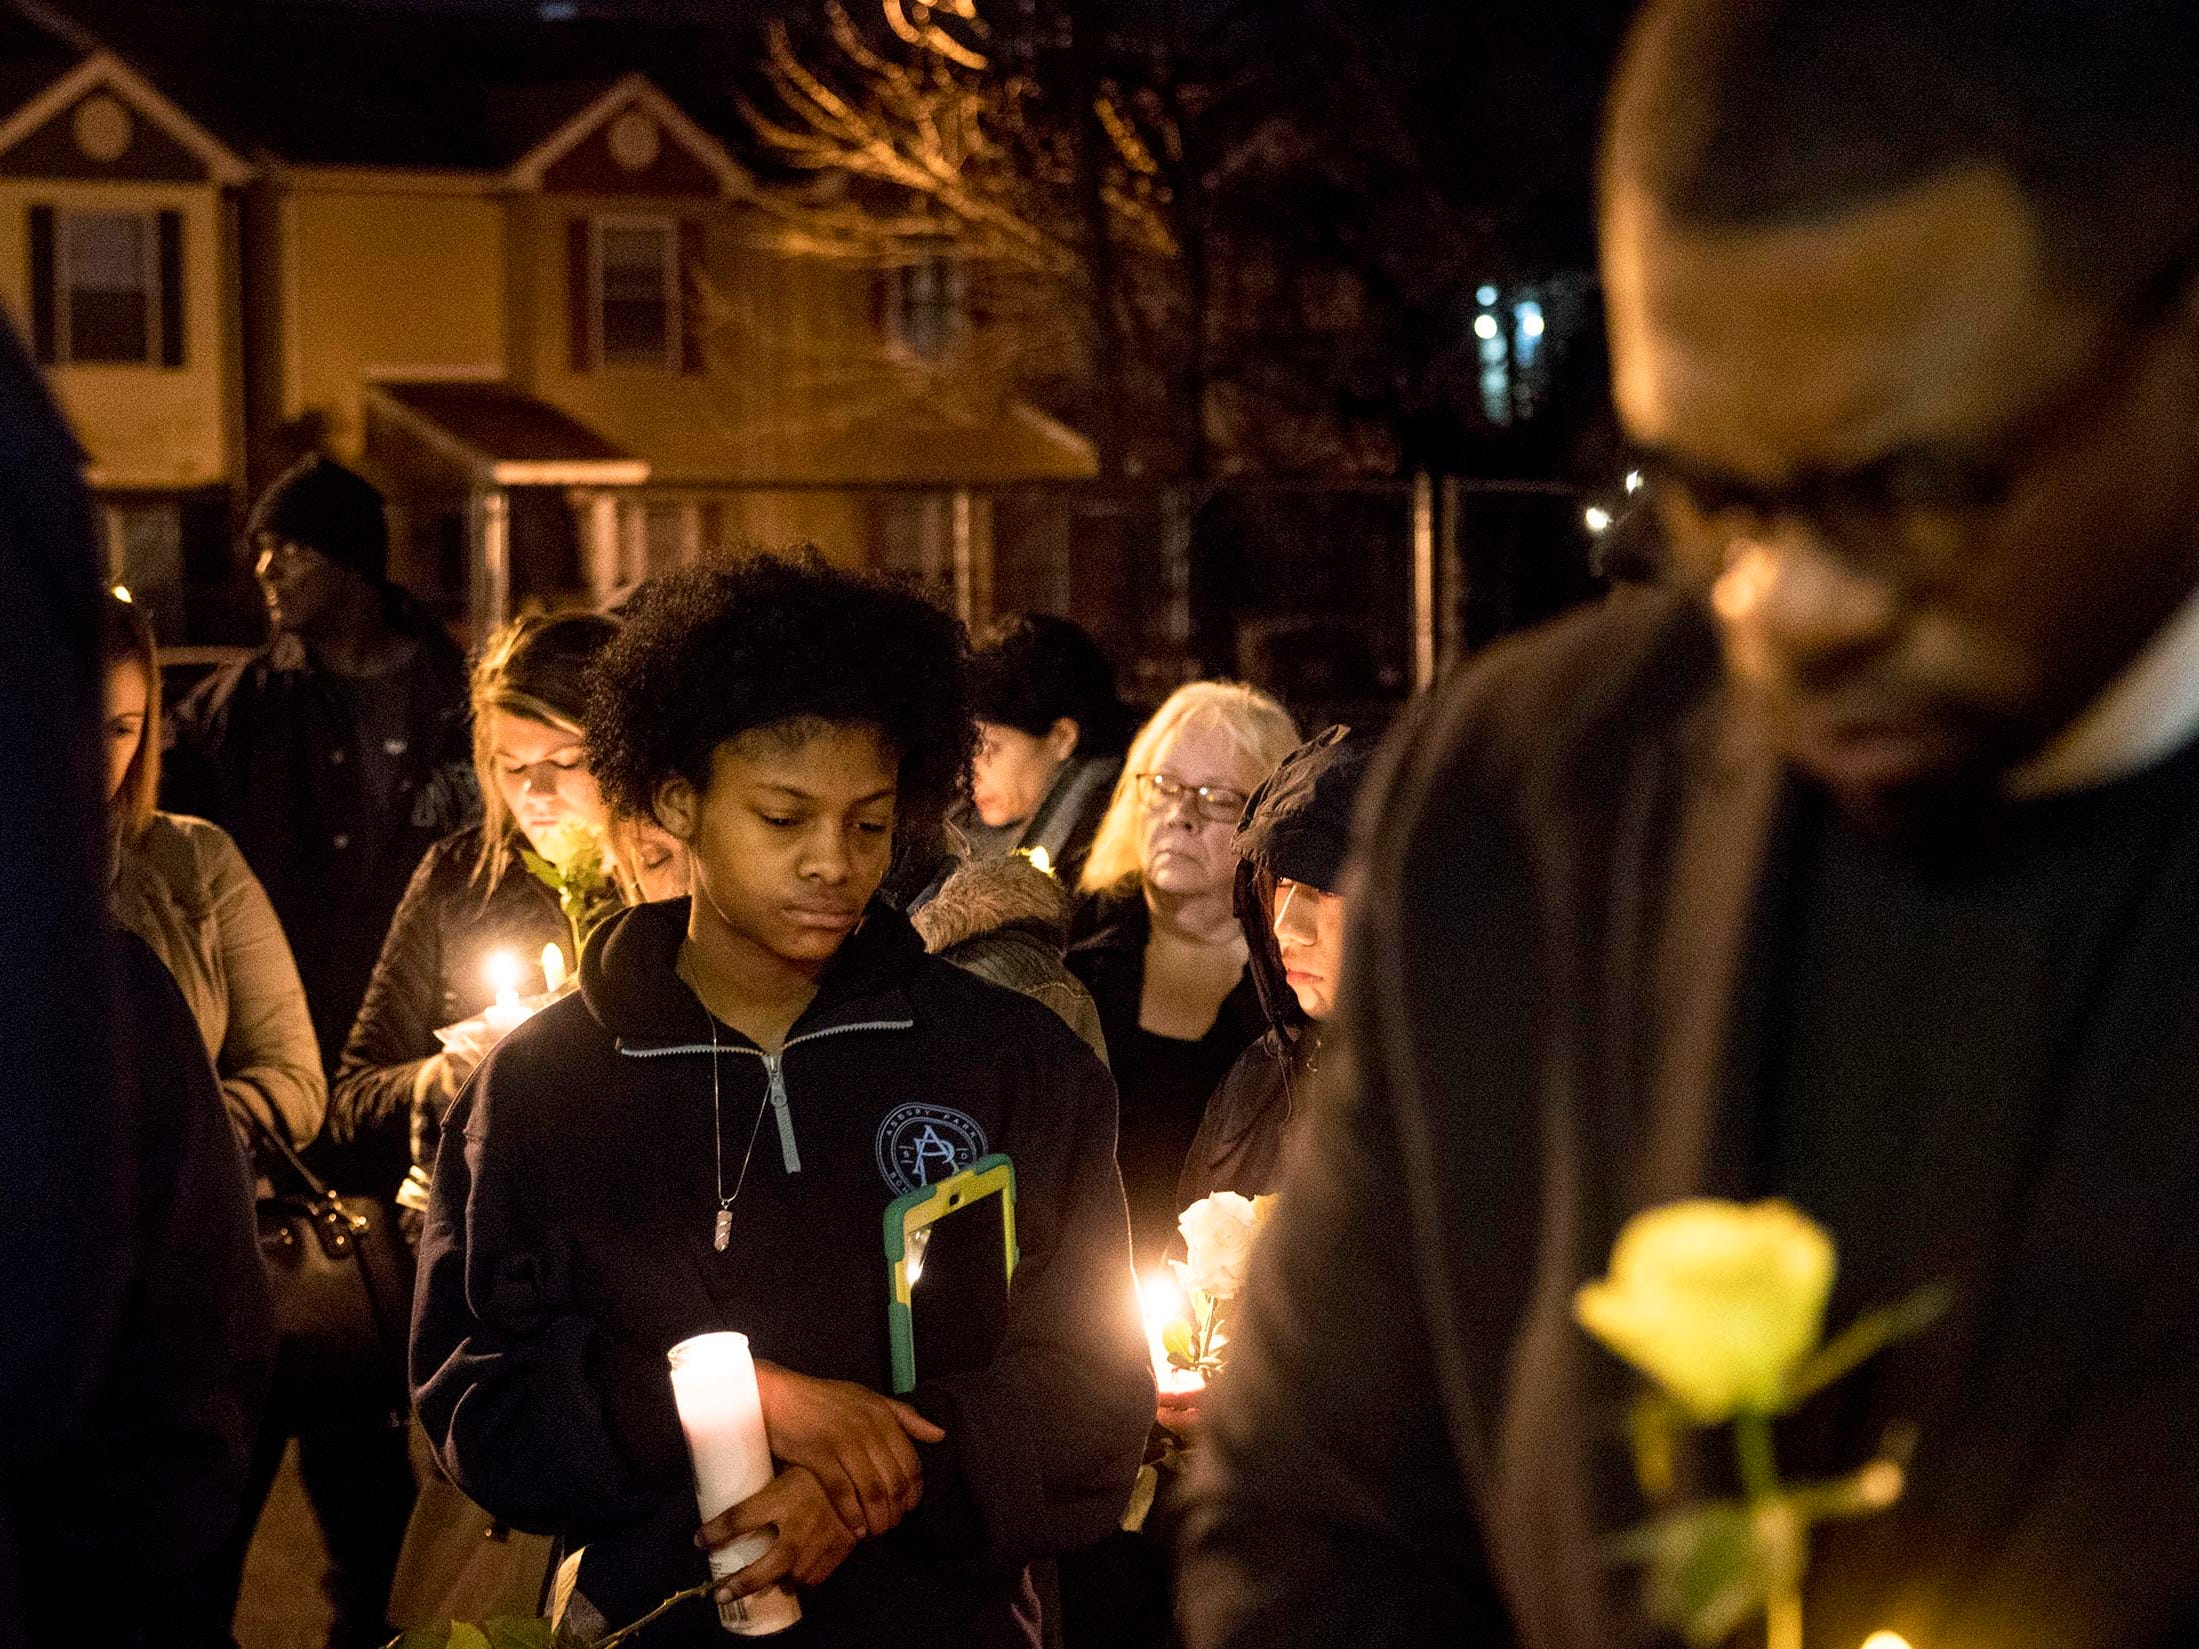 Mourners gather at the Boys & Girls Clubs of Monmouth County to hold a vigil for the 10 year old boy who was shot and killed this past week. Asbury Park, NJ onSaturday, February 24, 2018